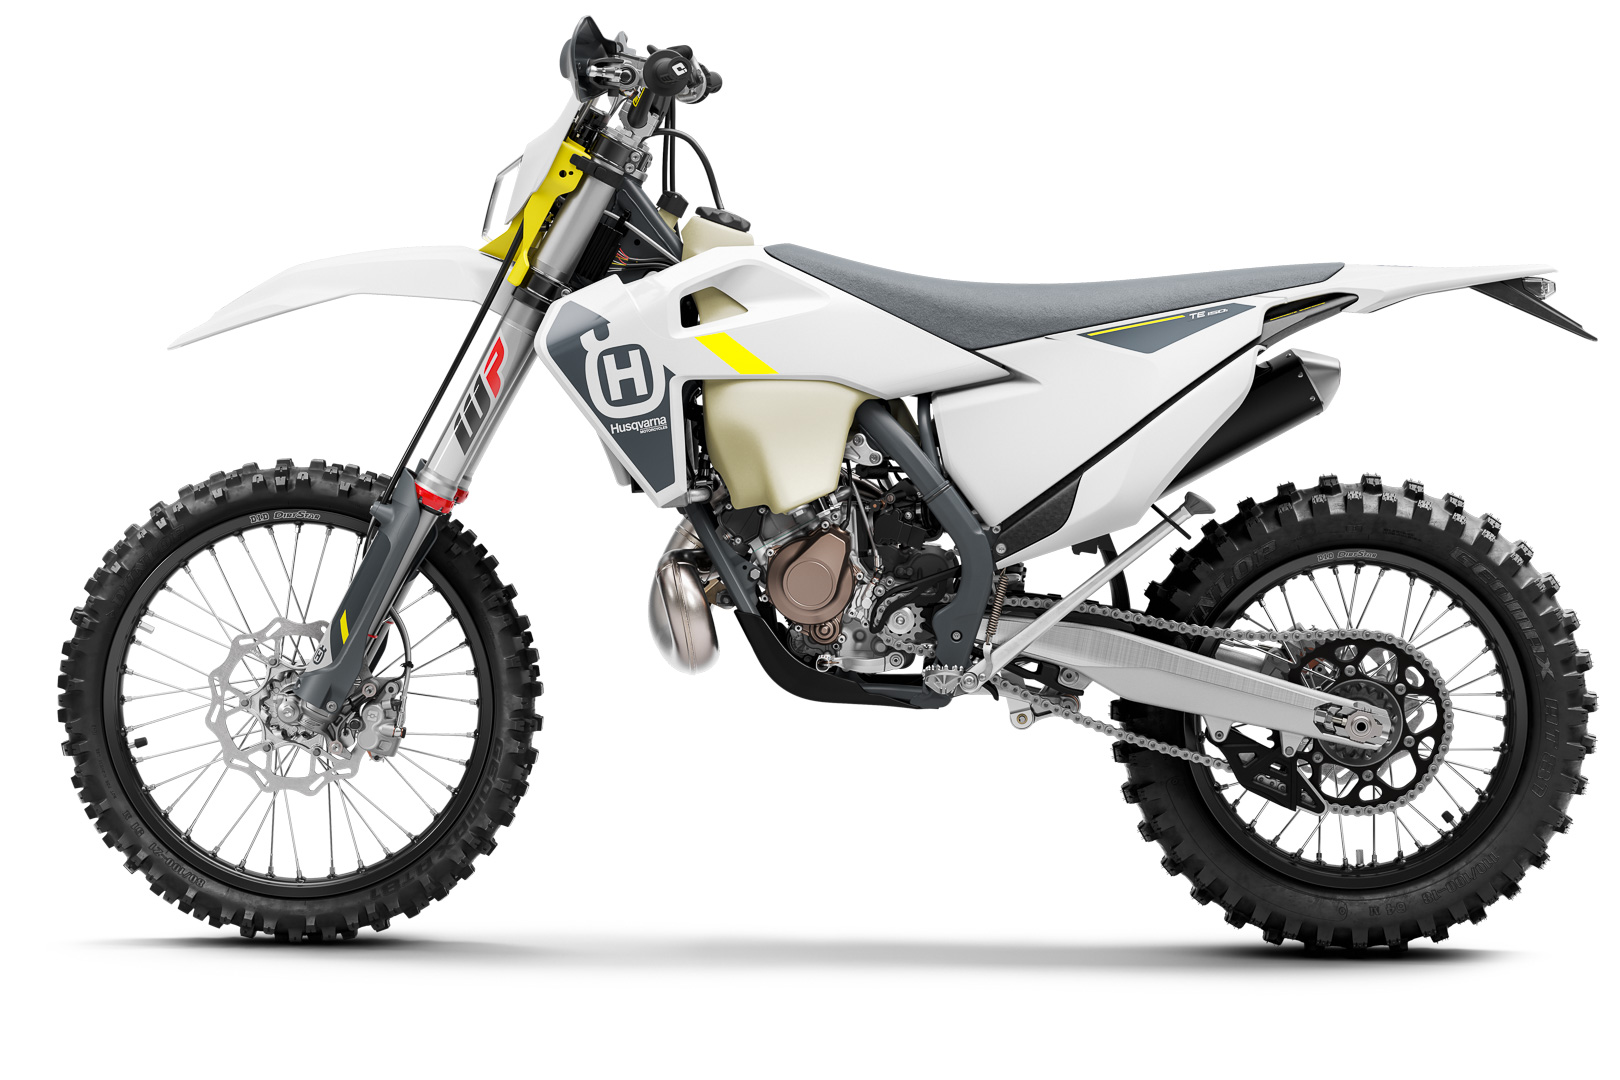 2022 Husqvarna Off-Road Enduro Lineup First Look (8 Fast Facts)